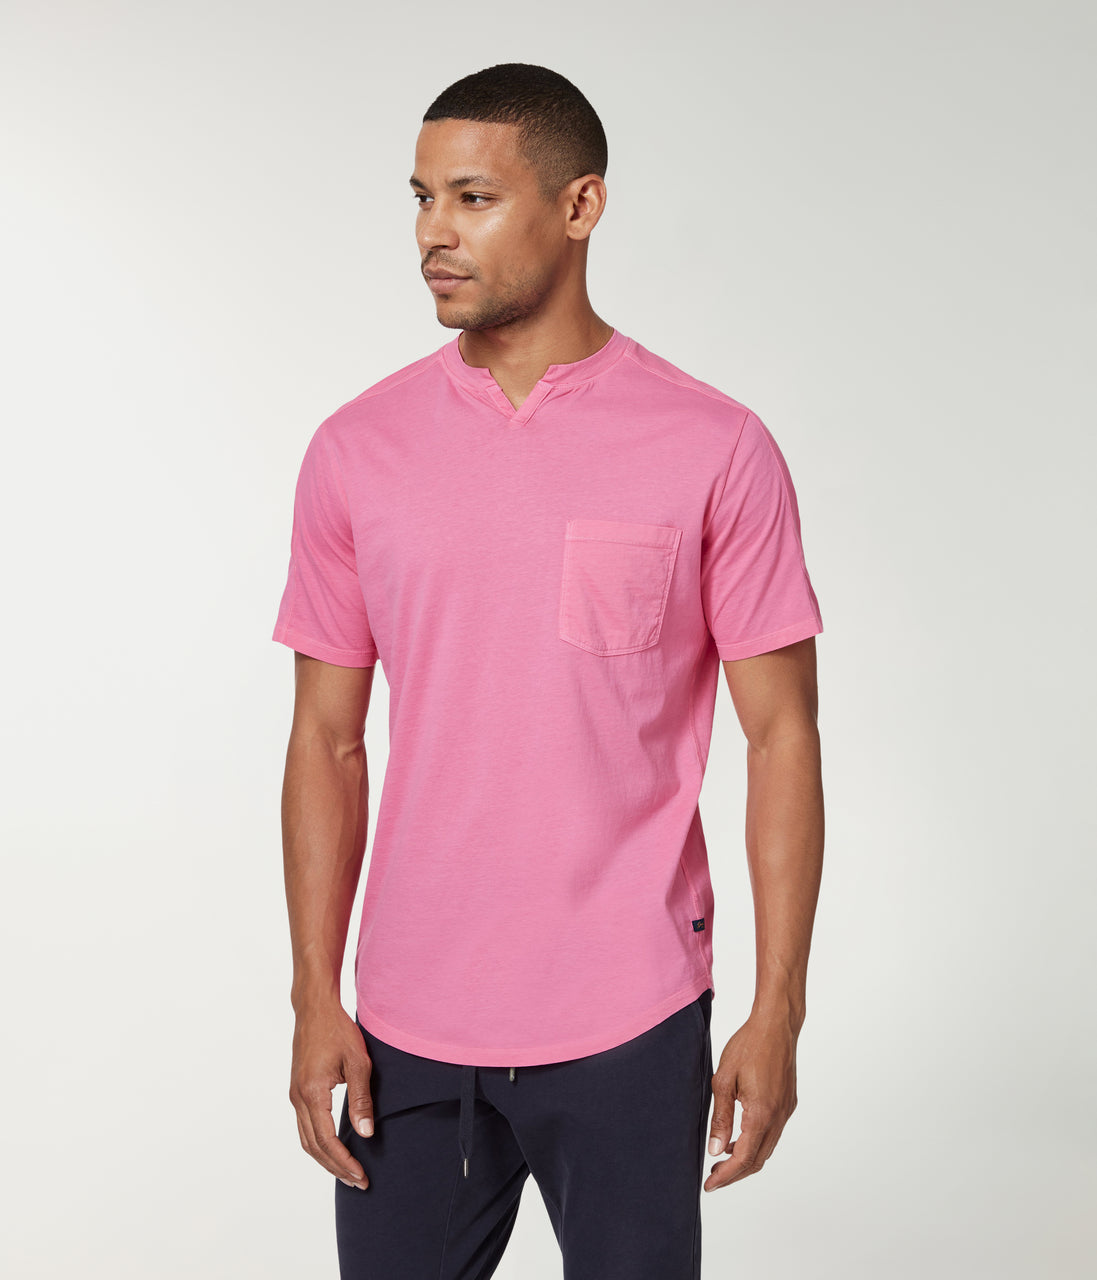 Premium Cotton Jersey Notch Neck Crew - Neon Pink - Good Man Brand - Premium Cotton Jersey Notch Neck Crew - Neon Pink